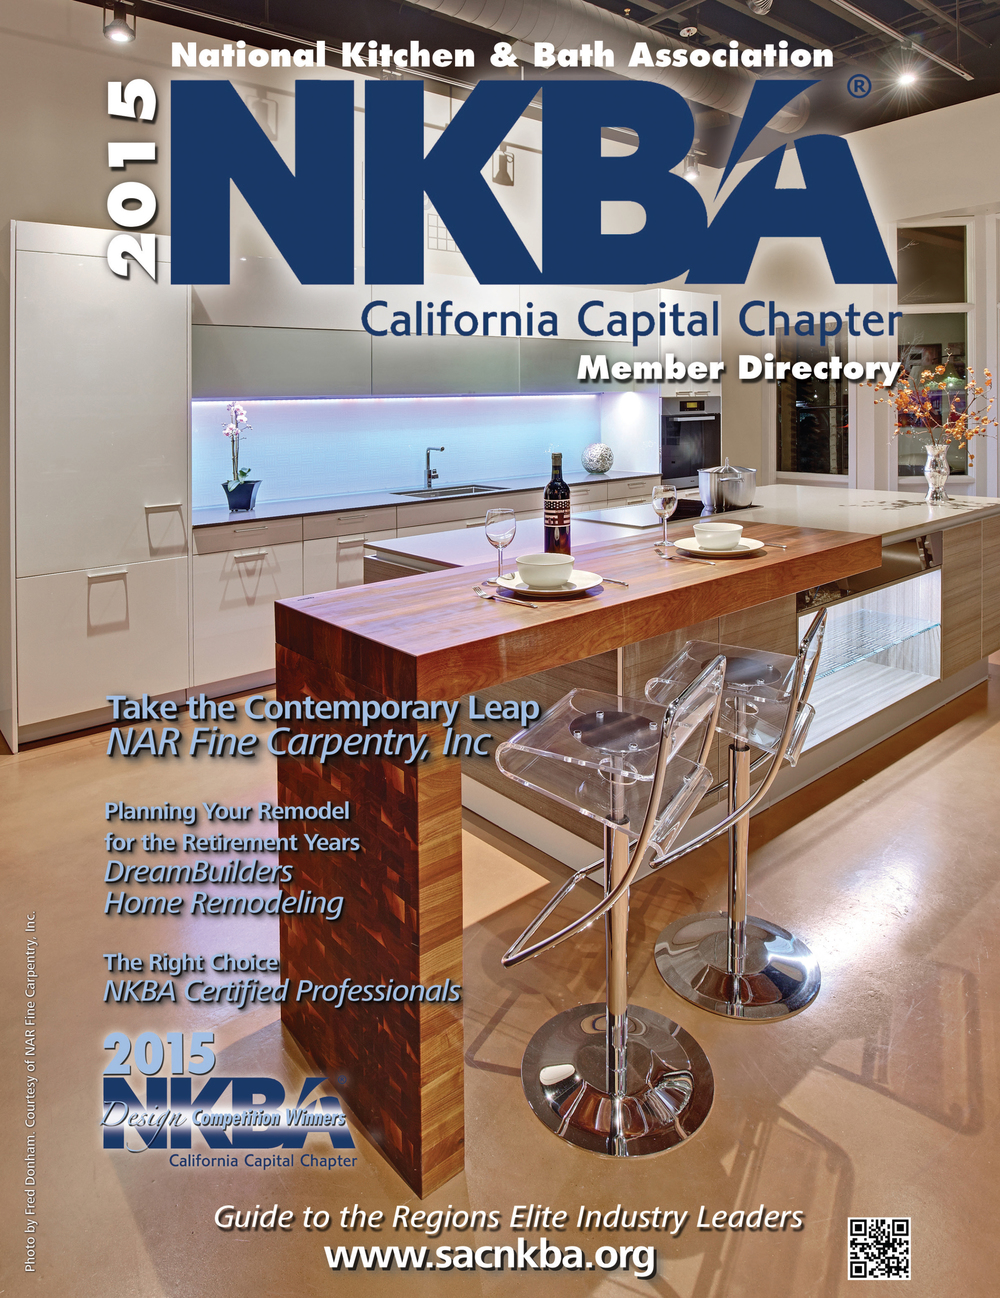 NKBA California Chapter Member Directory: Cover Photo, Featured Article & Five Winning Projects, 2015